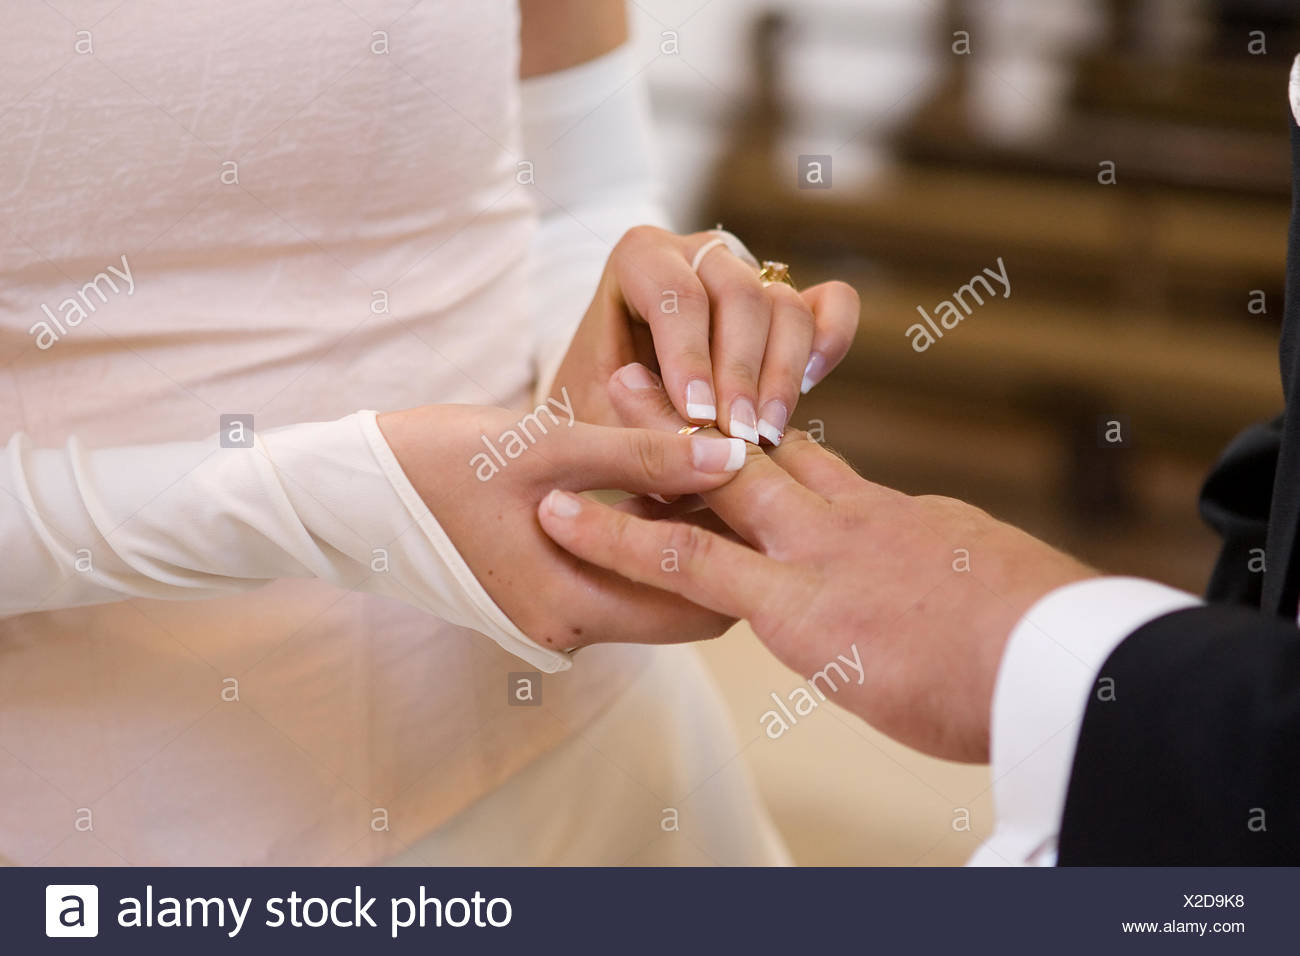 wedding ring handover - Stock Image